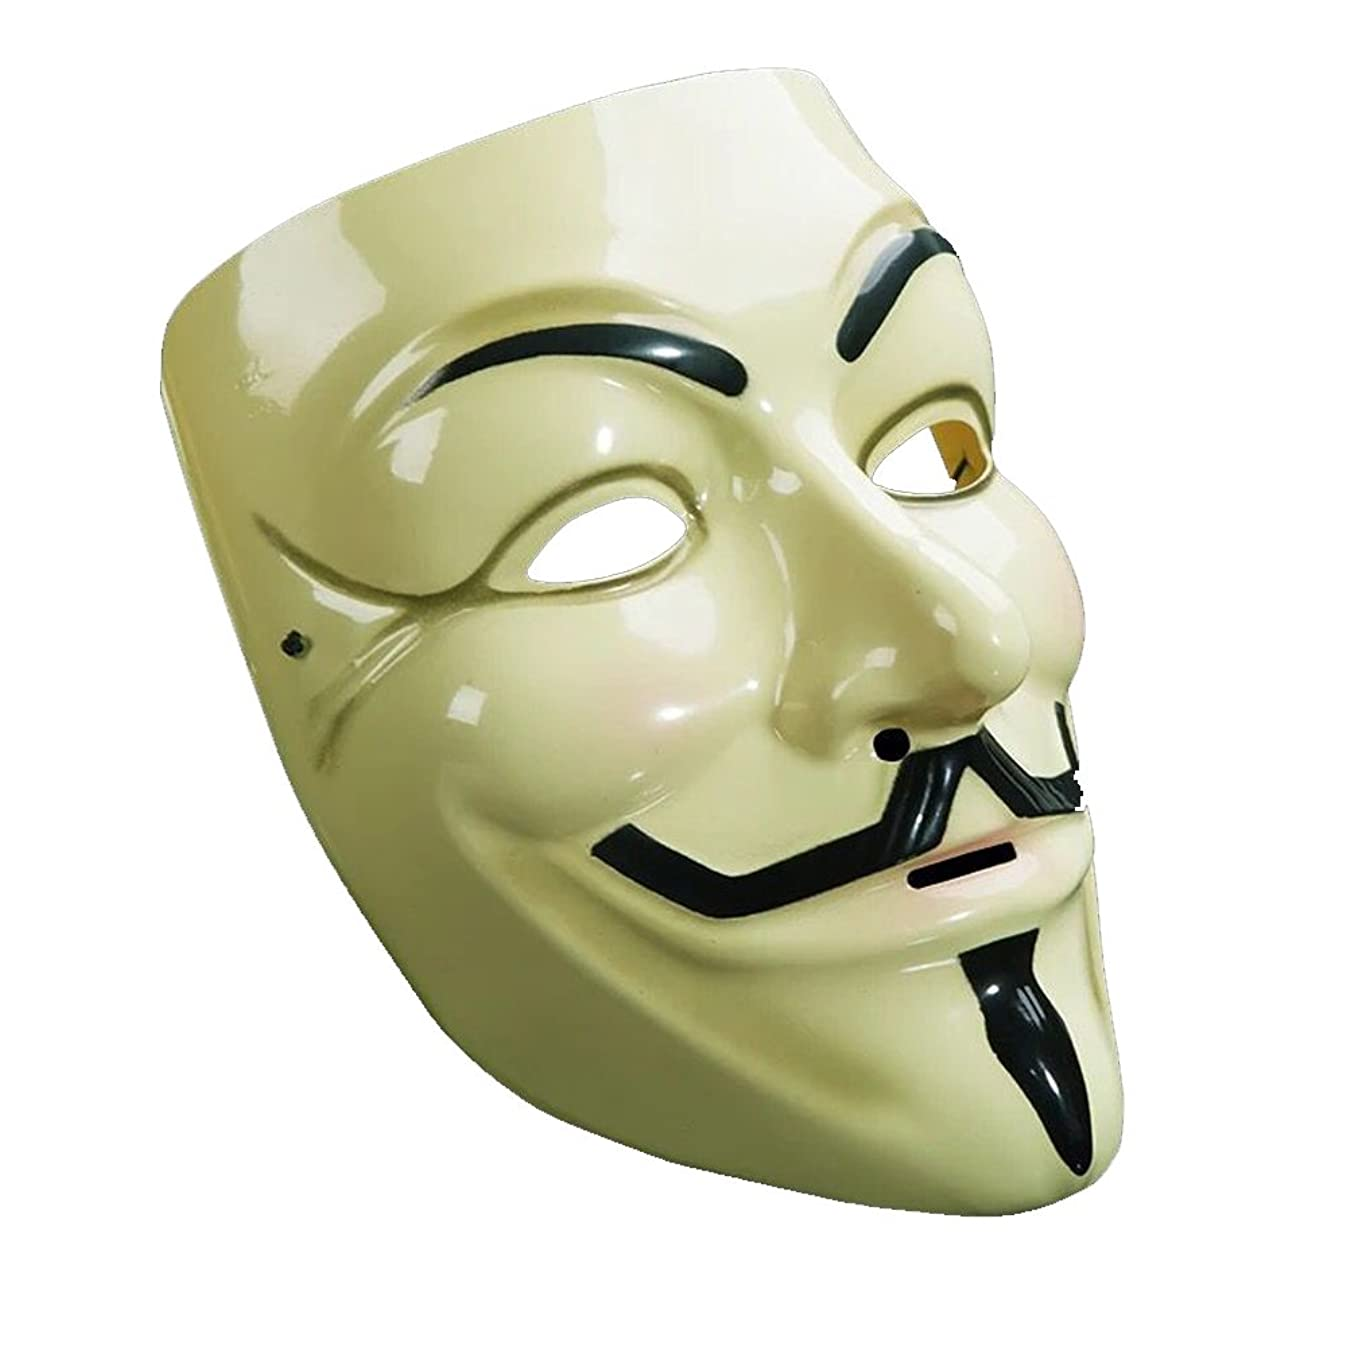 Halloween Mask, Ghost Mask Role Playing Mask Masquerade Party Halloween, KTV, Bar Mask Decoration